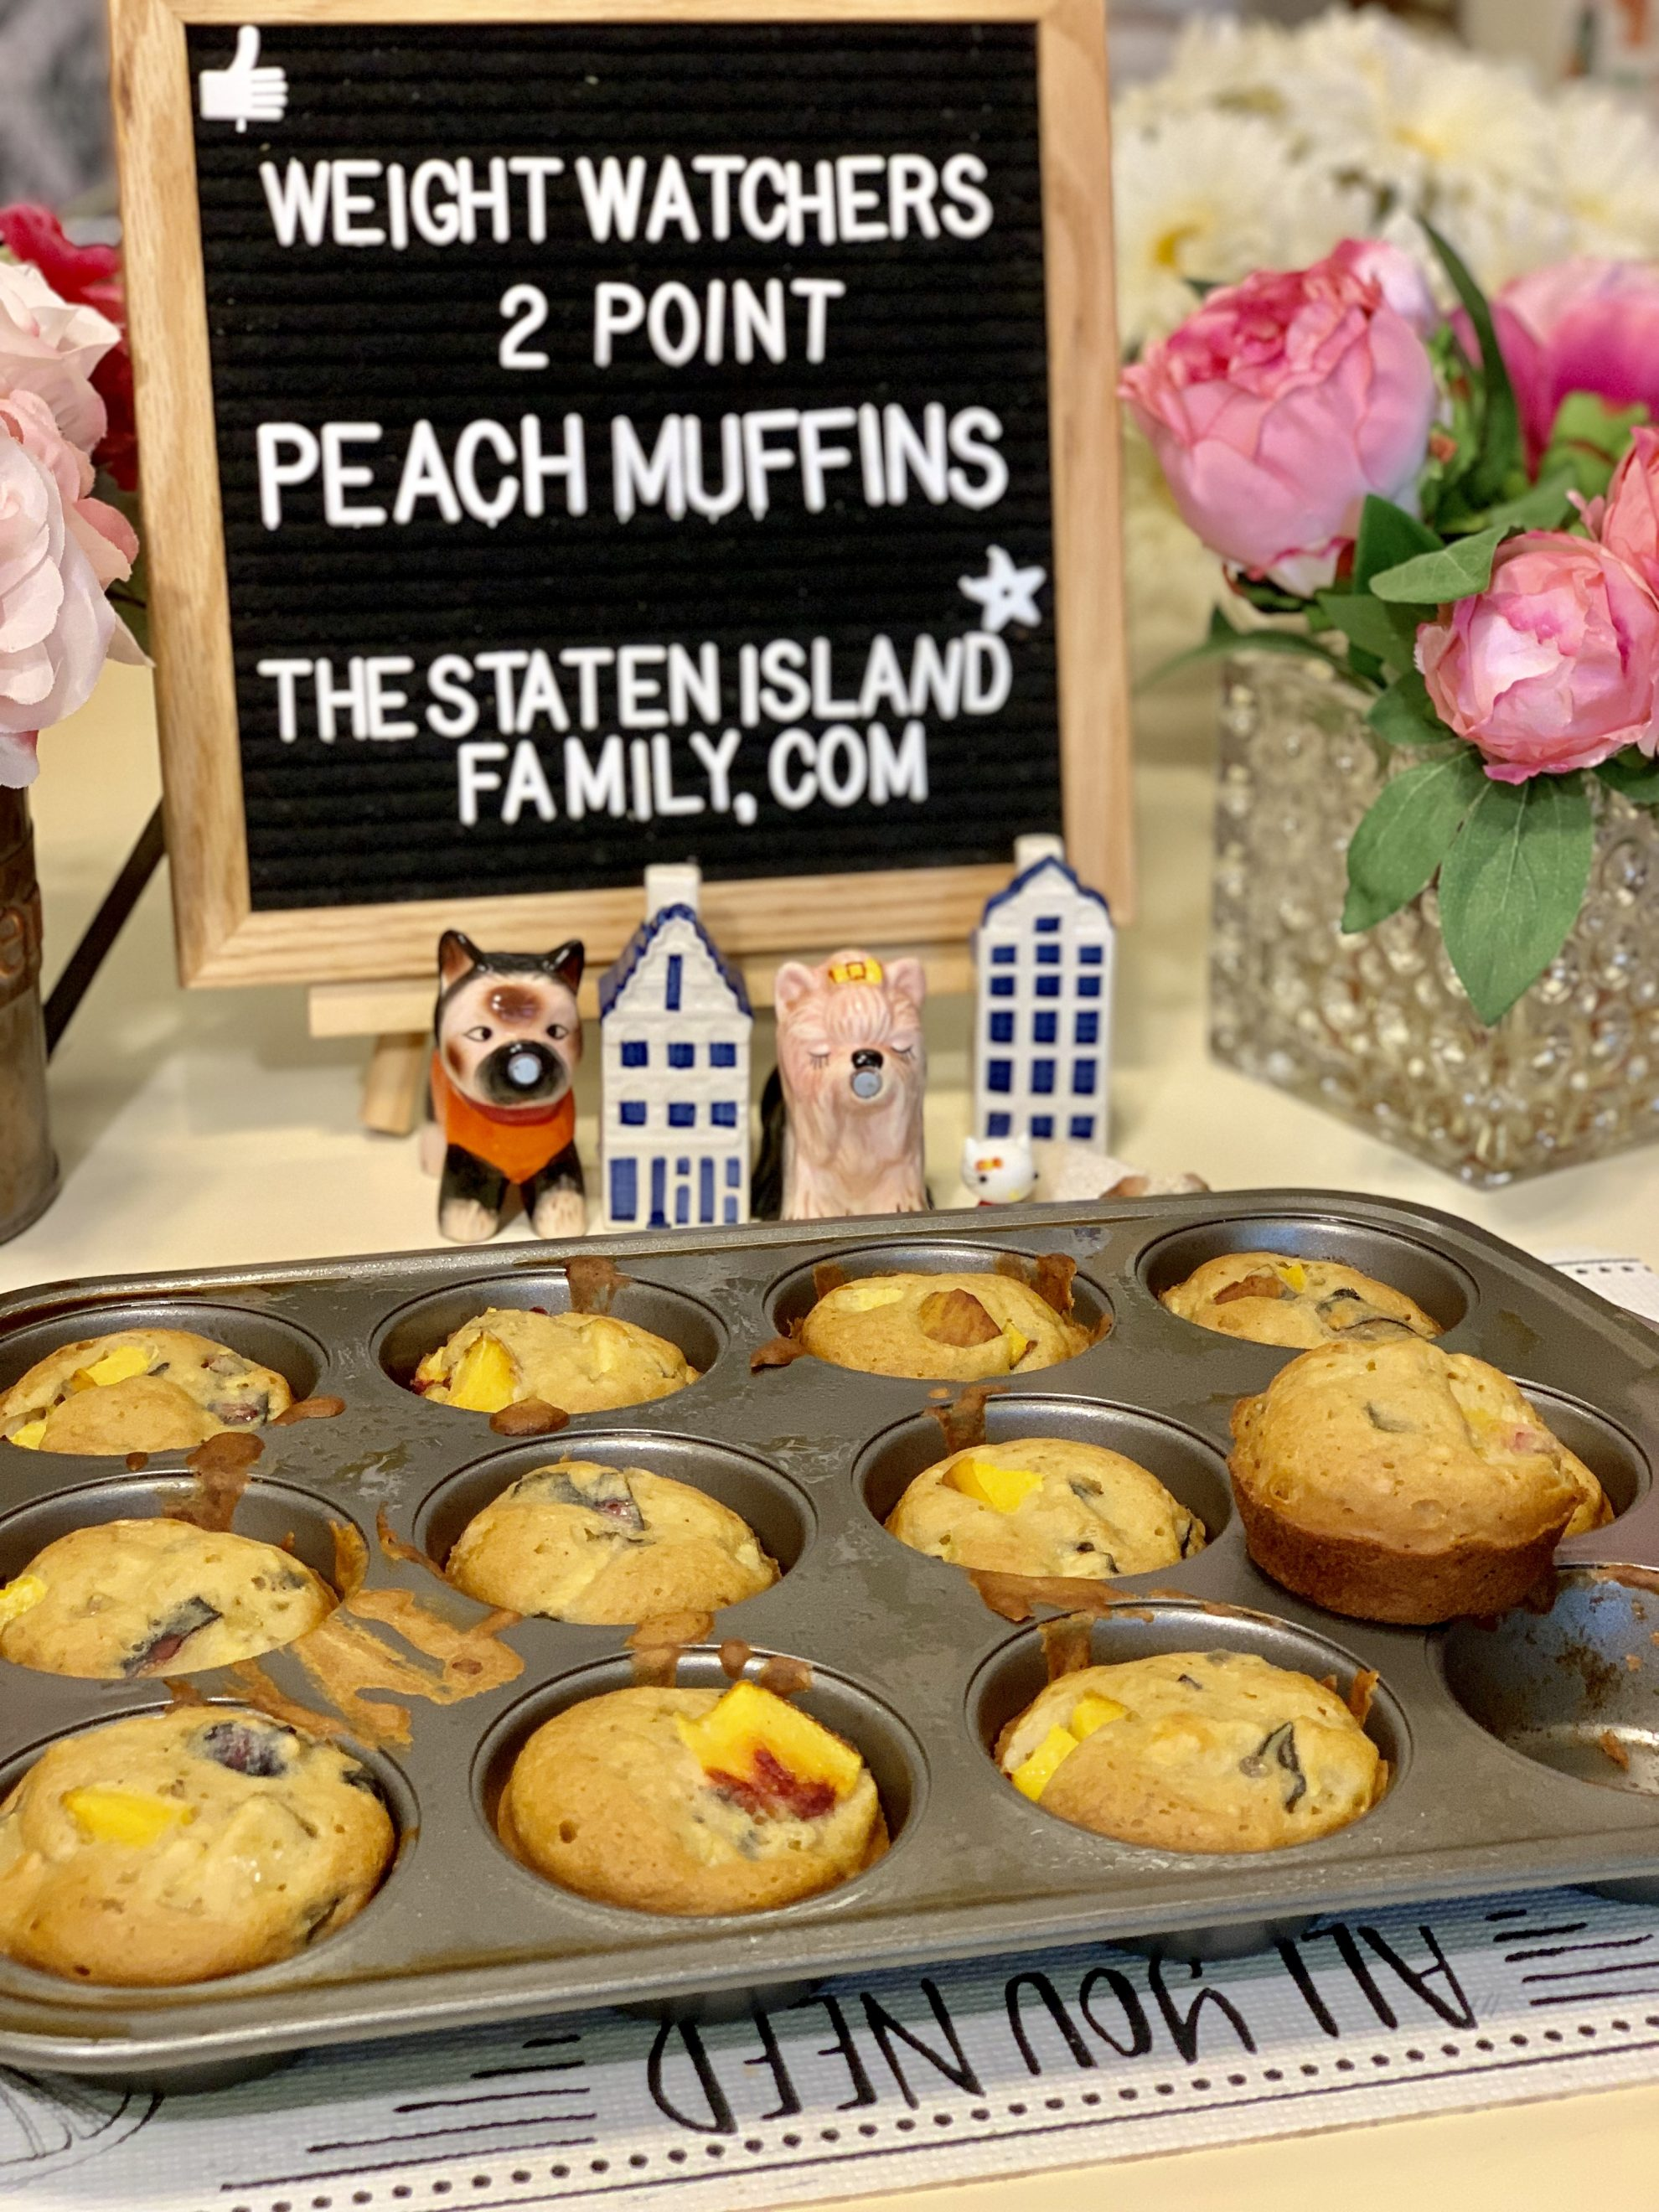 these Weight Watchers Peach Muffins -are just two points each. made the old fashioned way with flour (no cake mix) and they are so delicious! get the recipe here: https://www.thestatenislandfamily.com/weight-watchers-peach-muffins/